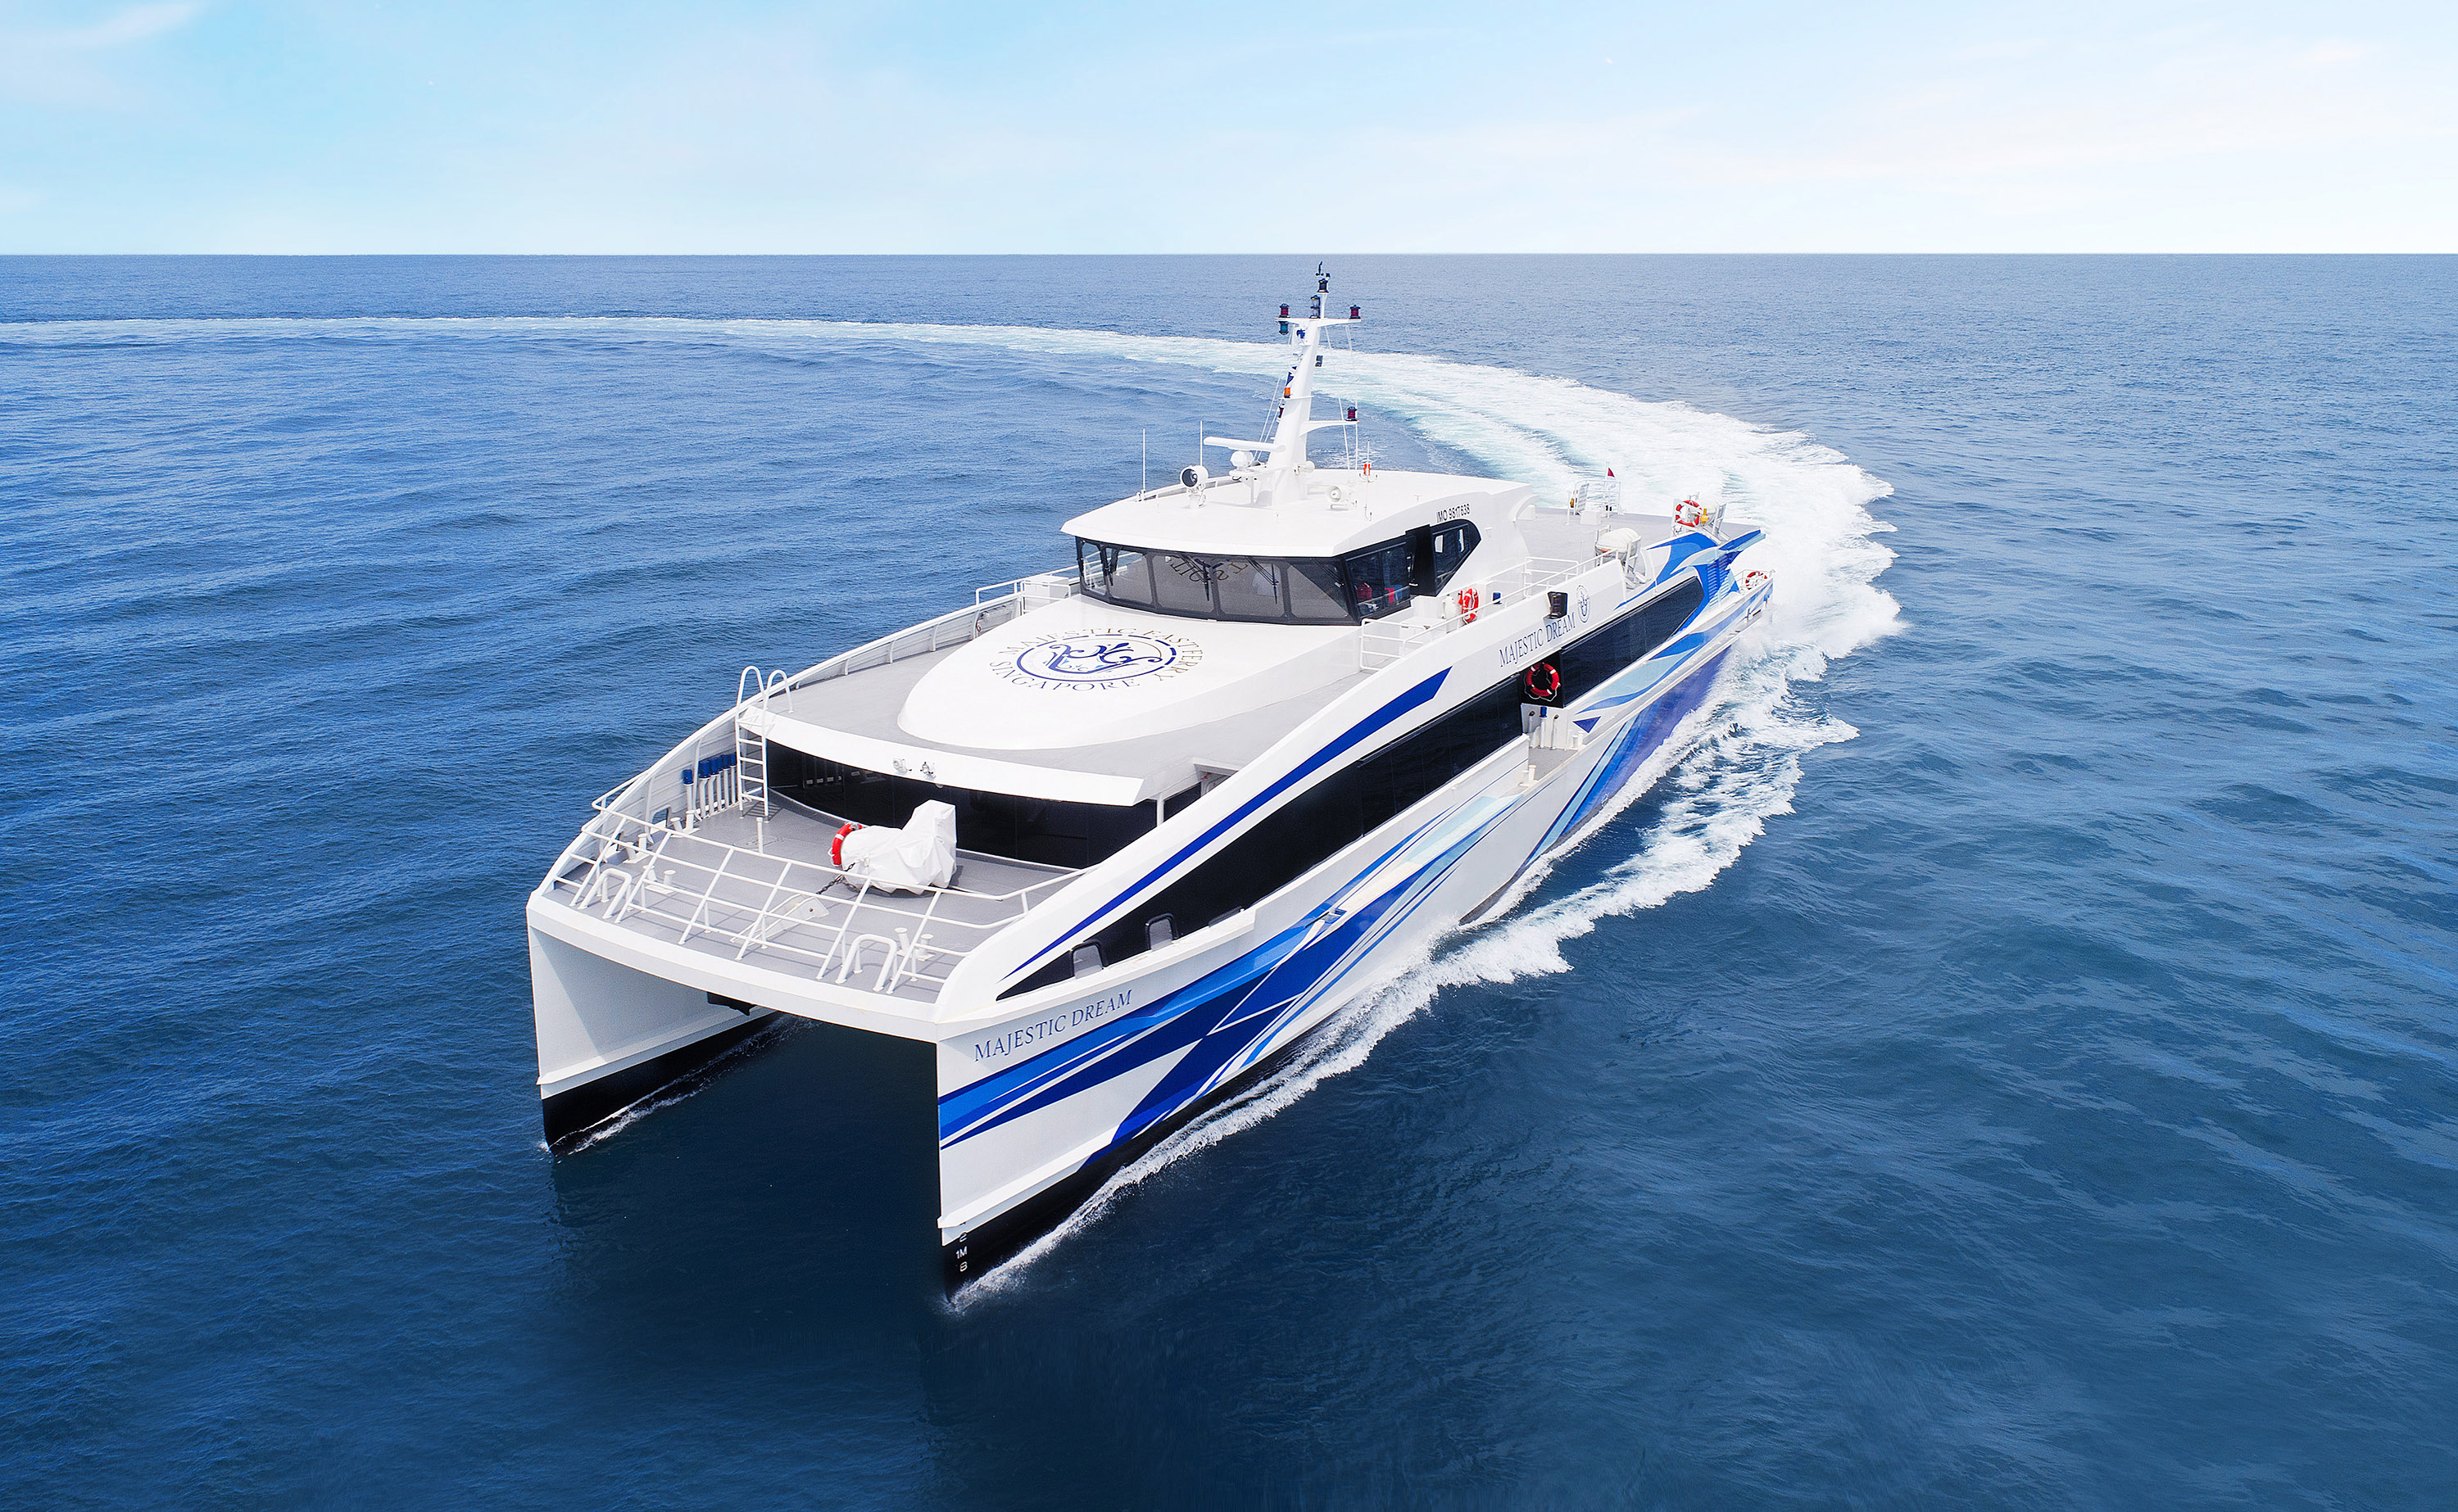 Majestic Fast Ferry Tickets Online